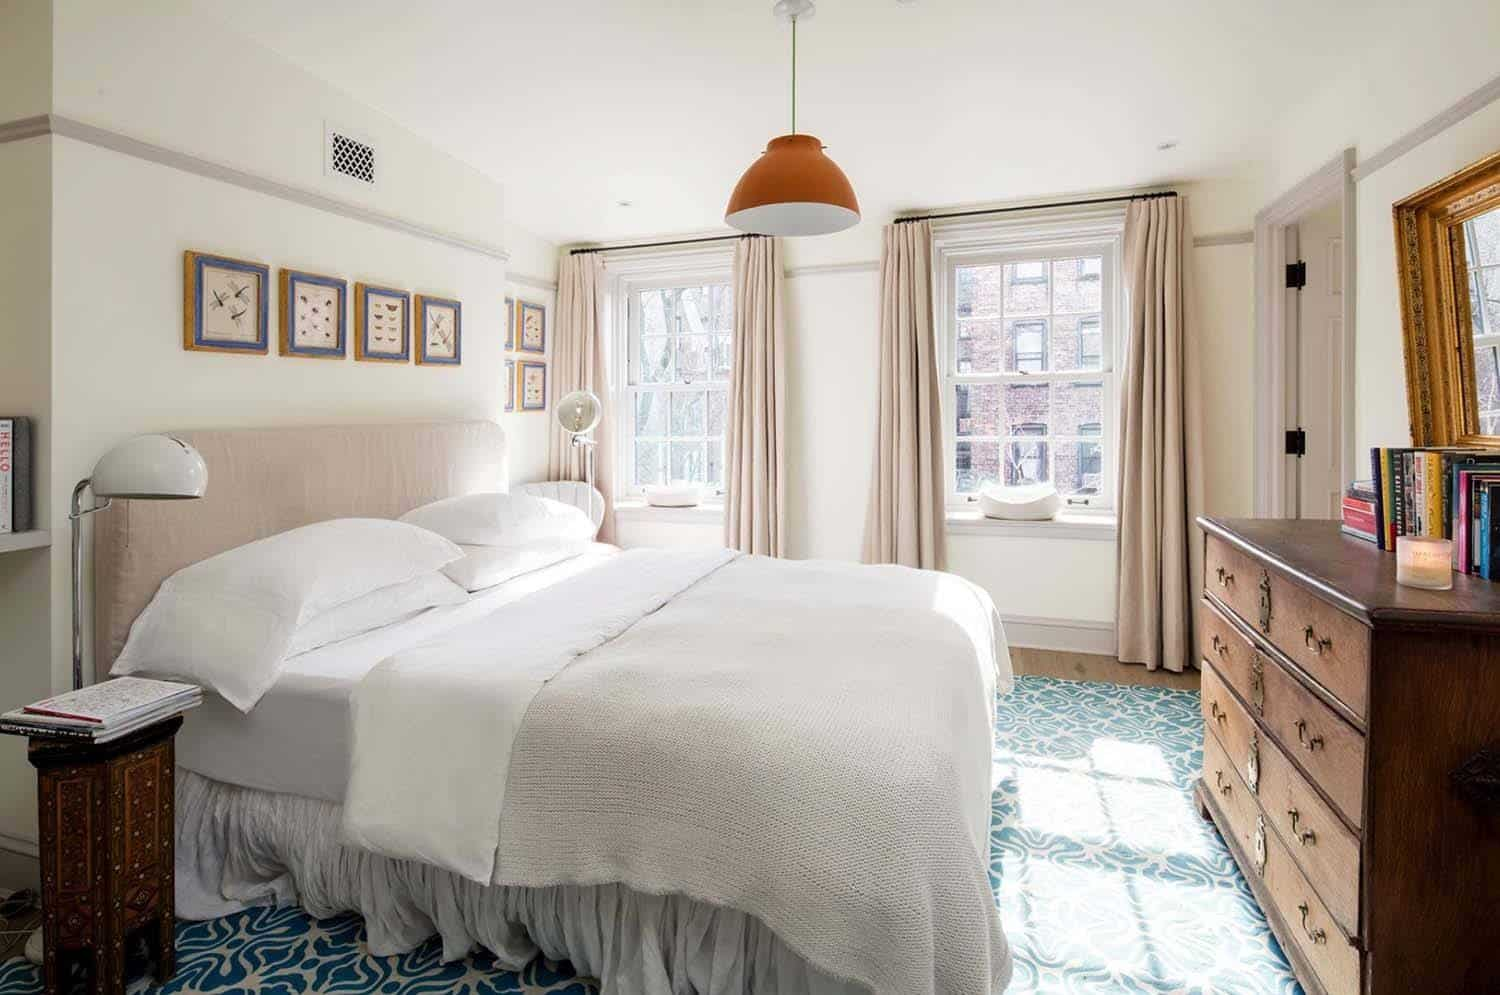 Greenwich Village Townhouse-18-1 Kindesign